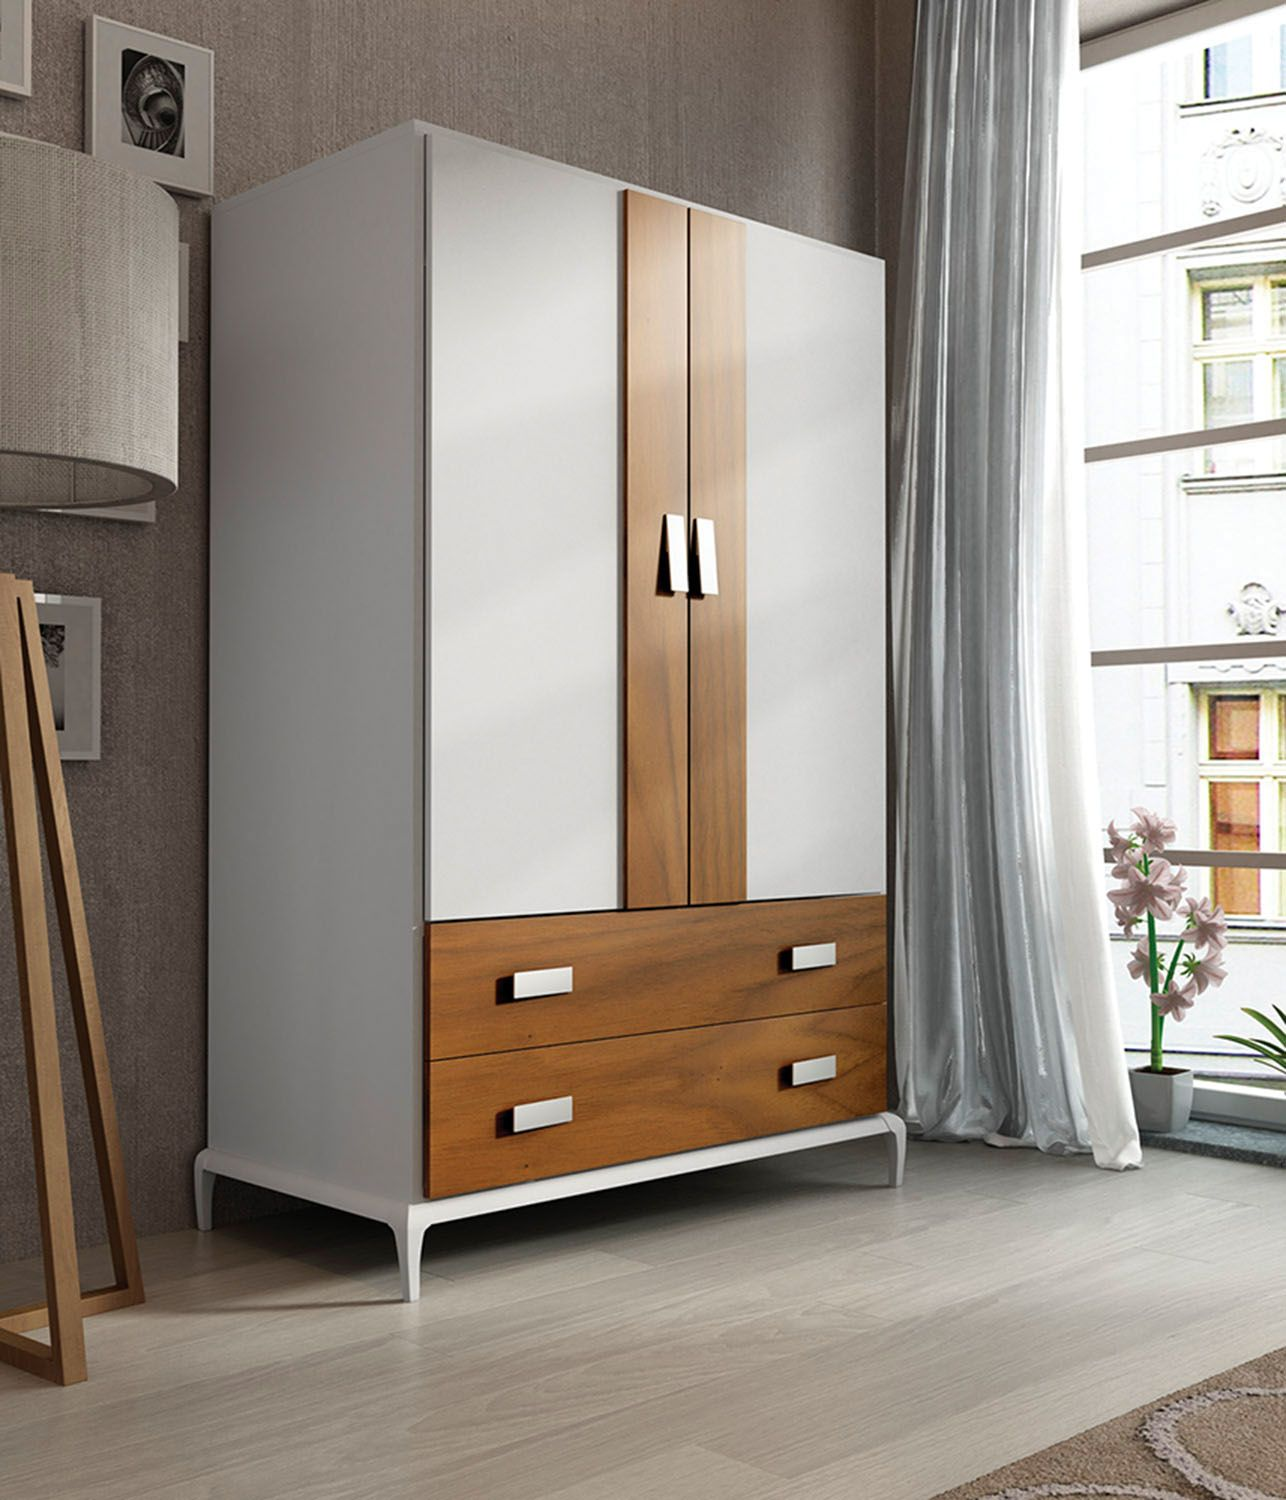 Malaga Wardrobe Malaga Fenicia Spain Wardrobes Wardrobe Door Designs Wardrobe Furniture Contemporary Bedroom Sets